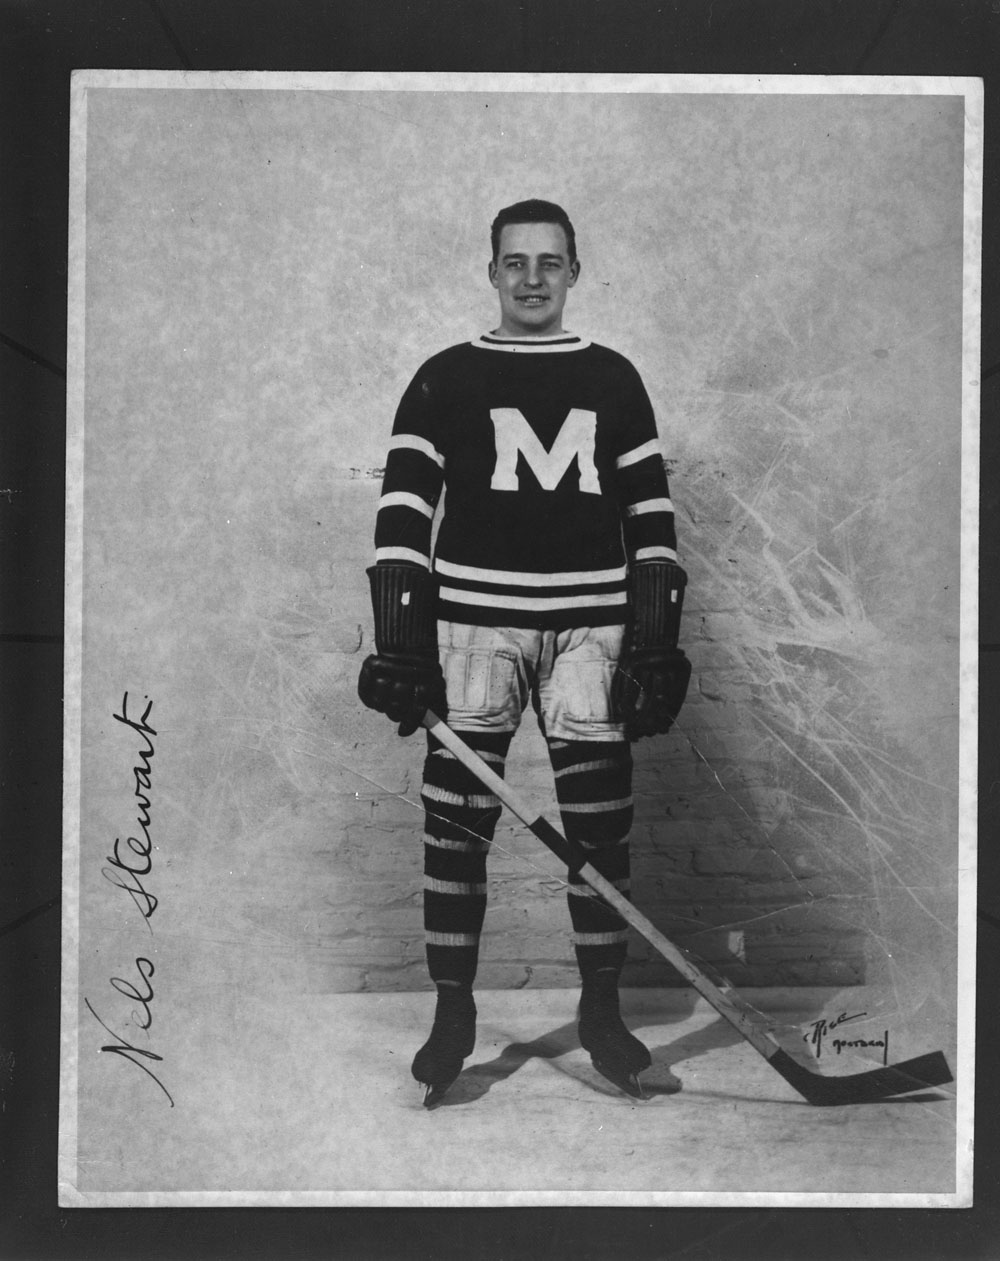 Photo of Nels Stewart during the 1925 1926 season